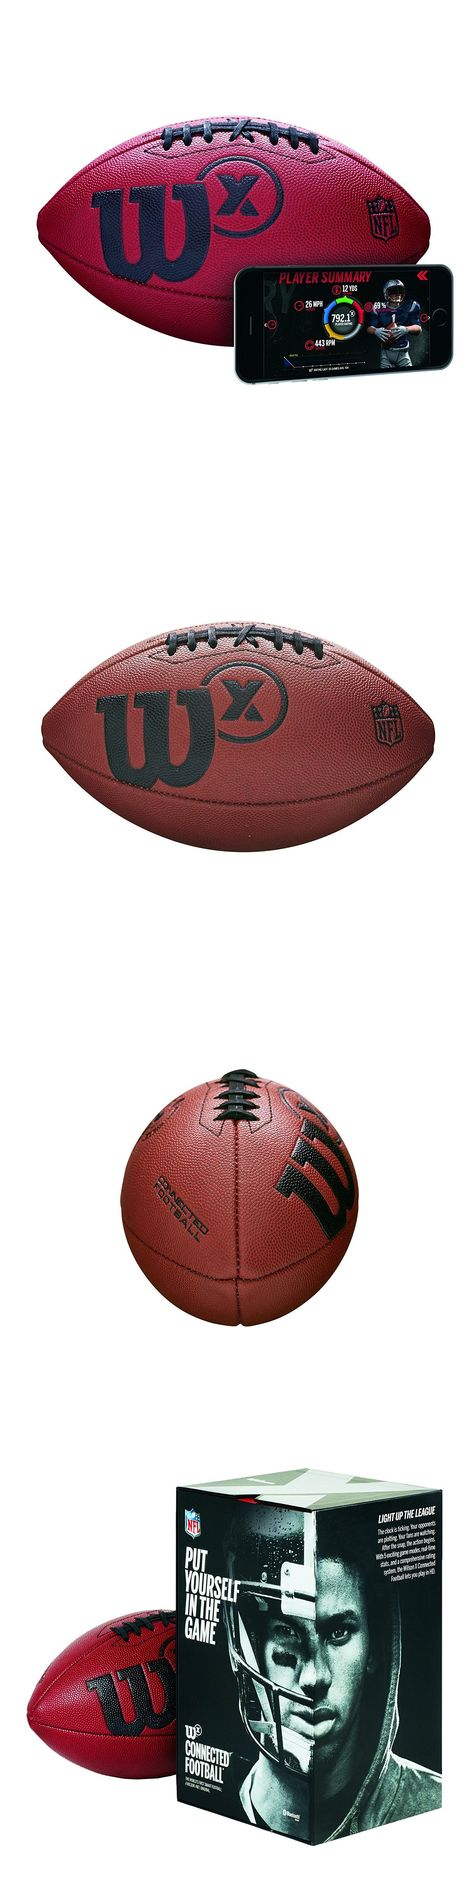 under armour 695xt. footballs 21220: wilson x connected football, official size -\u003e buy it now only: $125 on ebay!   21220 pinterest ebay, football and under armour 695xt